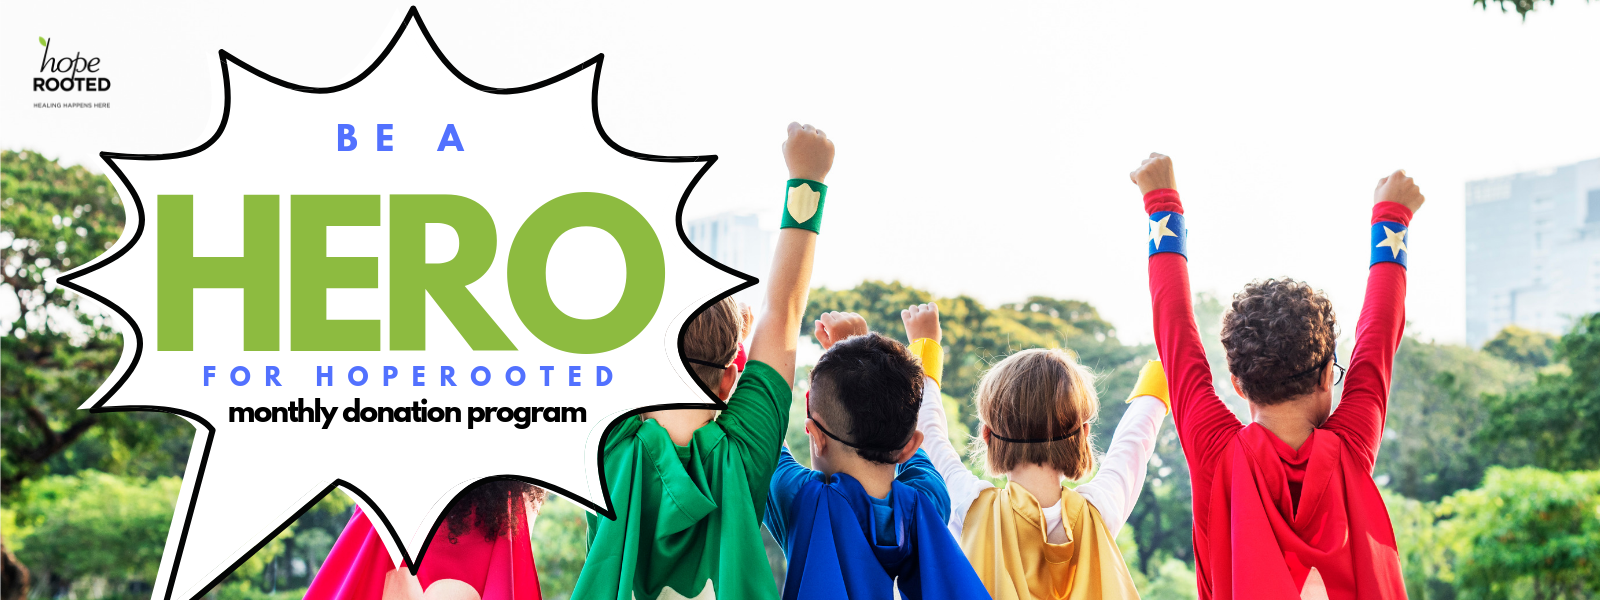 Be a HERO for children with Chronic Illness image